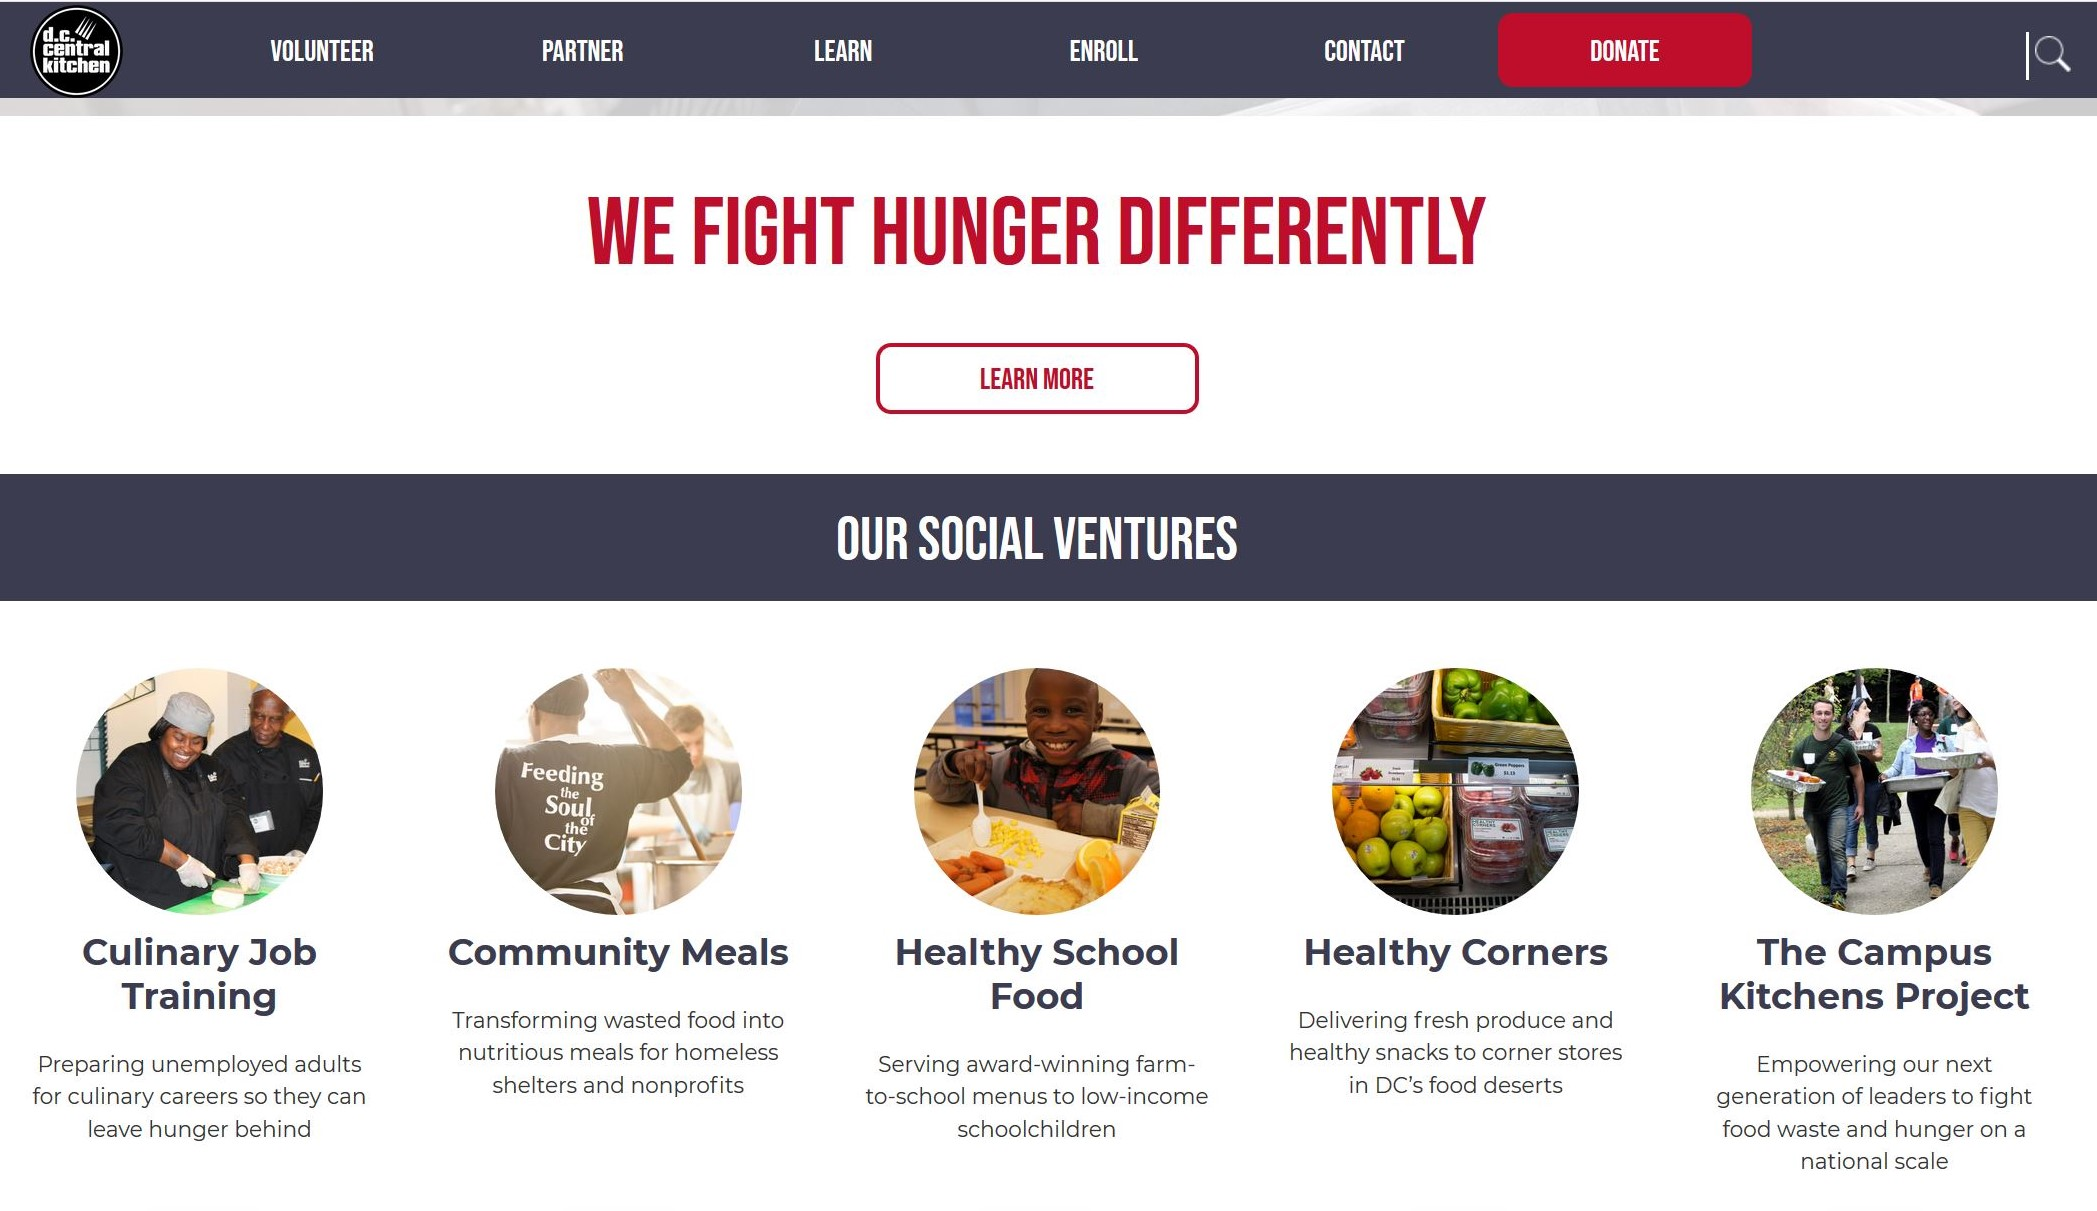 DC Central Kitchen website